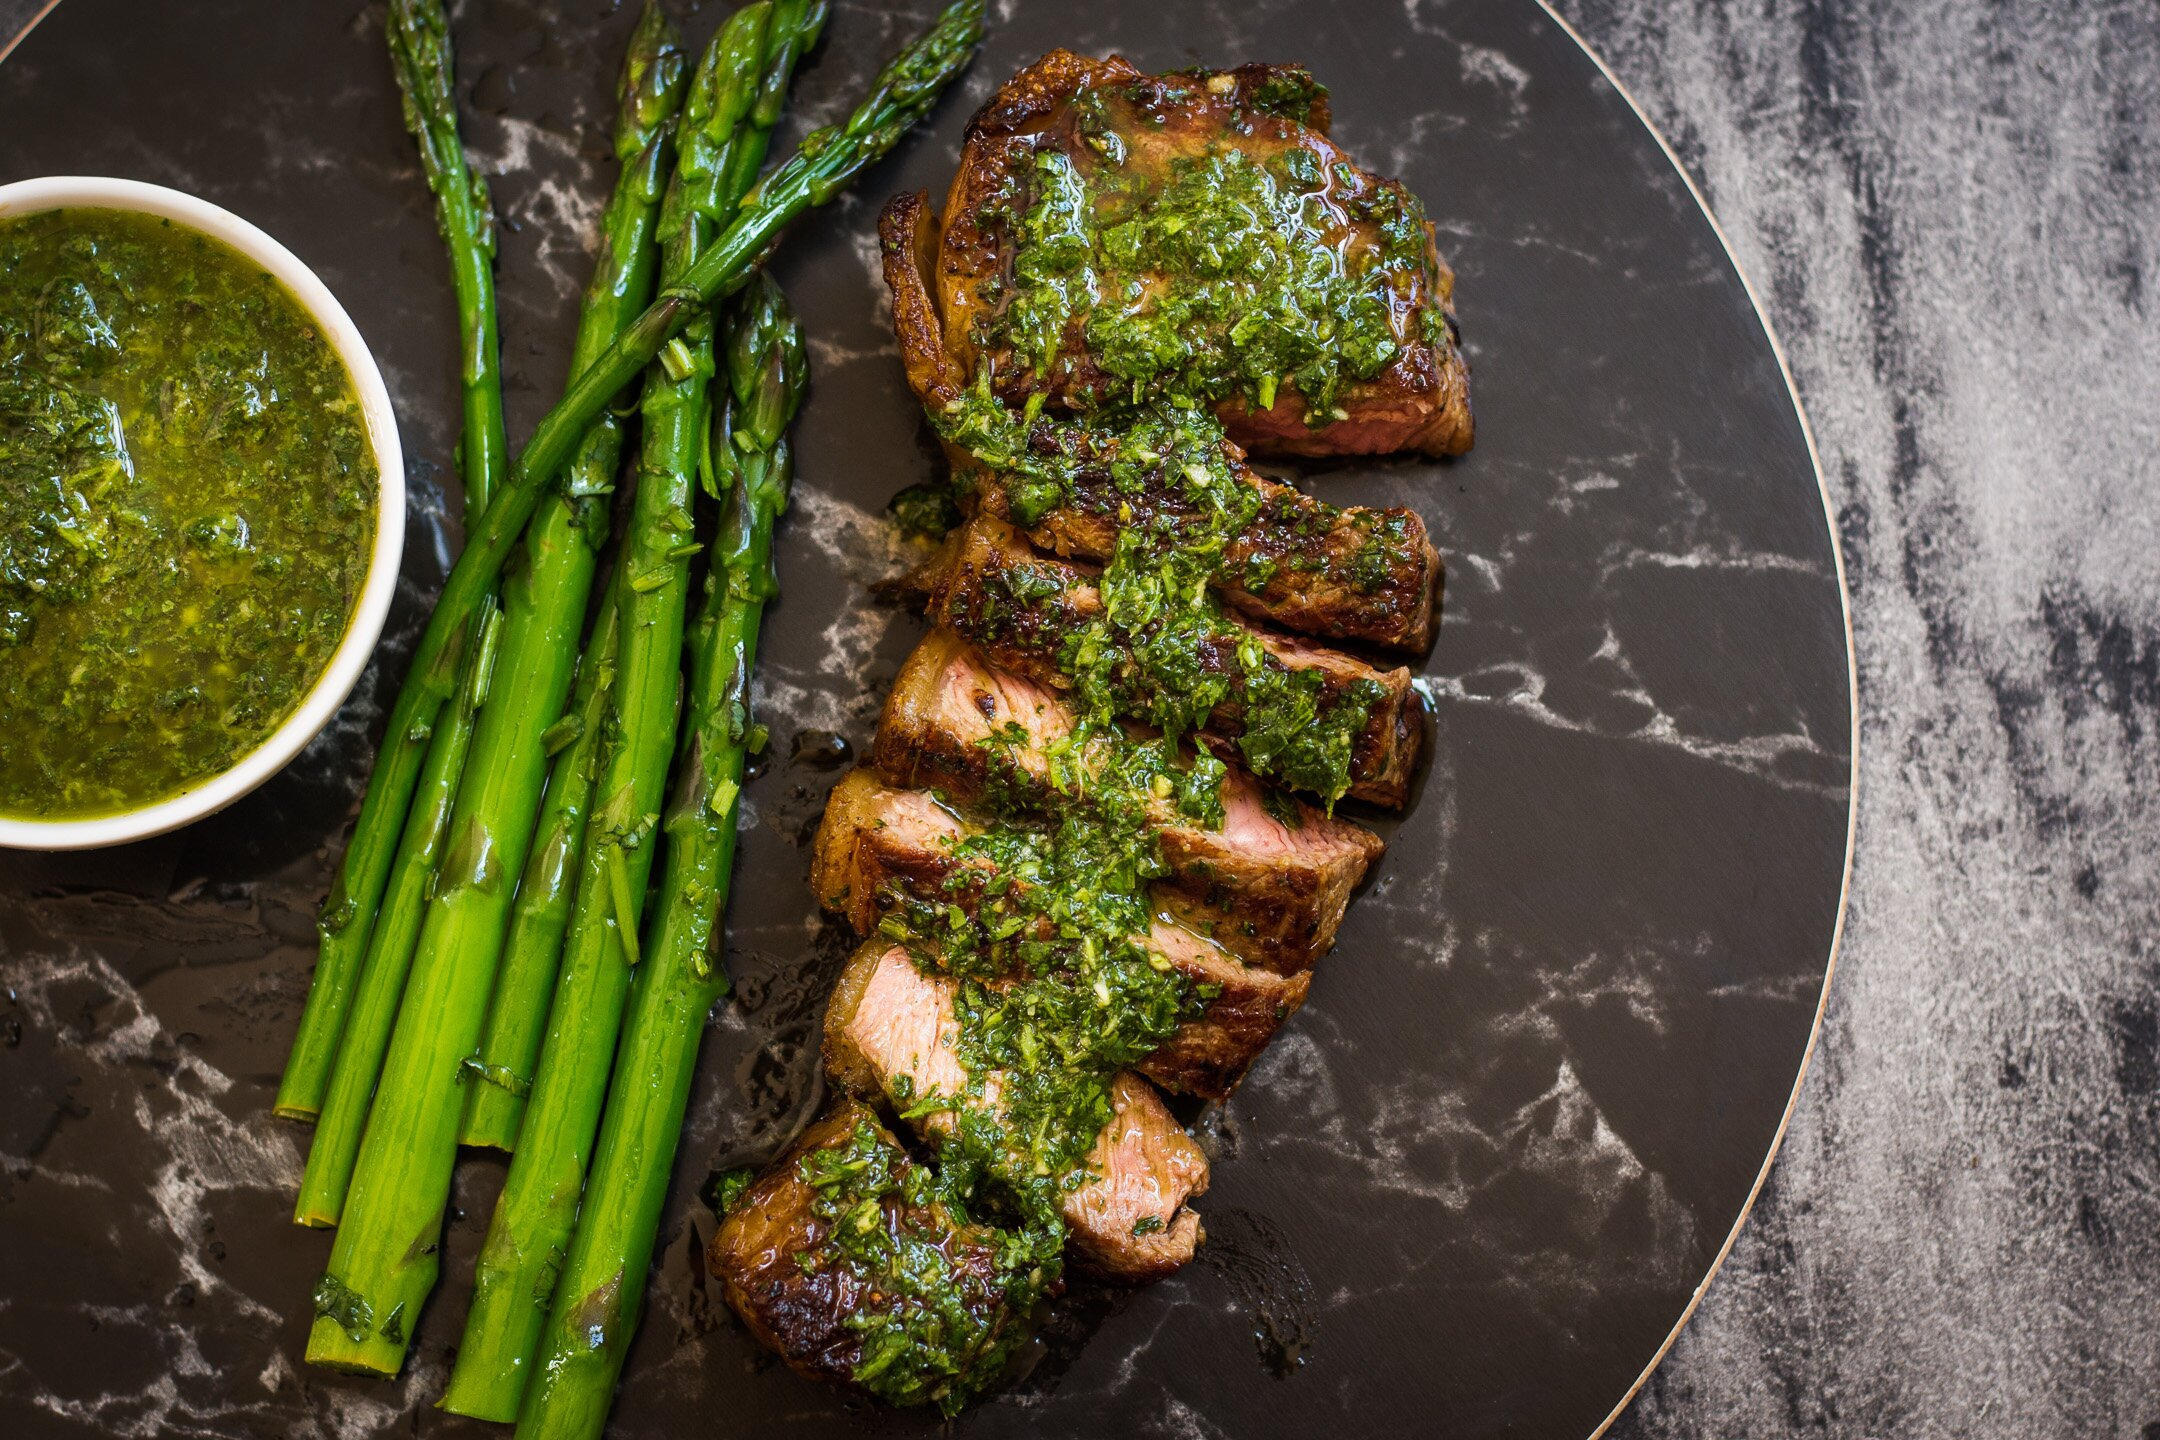 steak-with-chimichurri-sauce-recipe-1